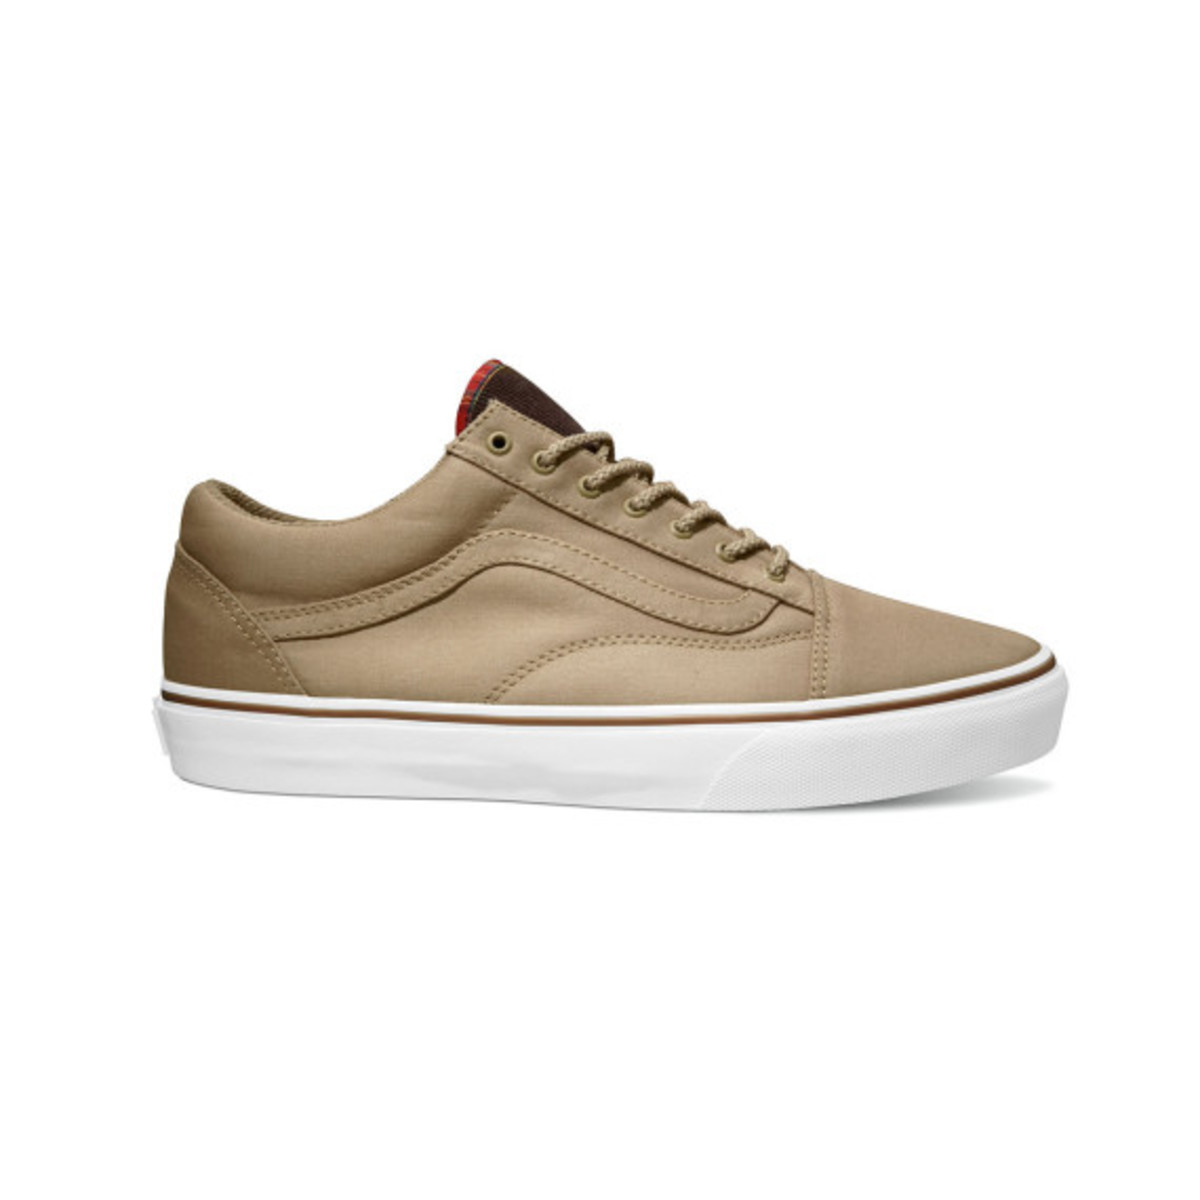 7fe1878153 VANS Vault Vansguard OG Old Skool LX Colorways - Freshness Mag